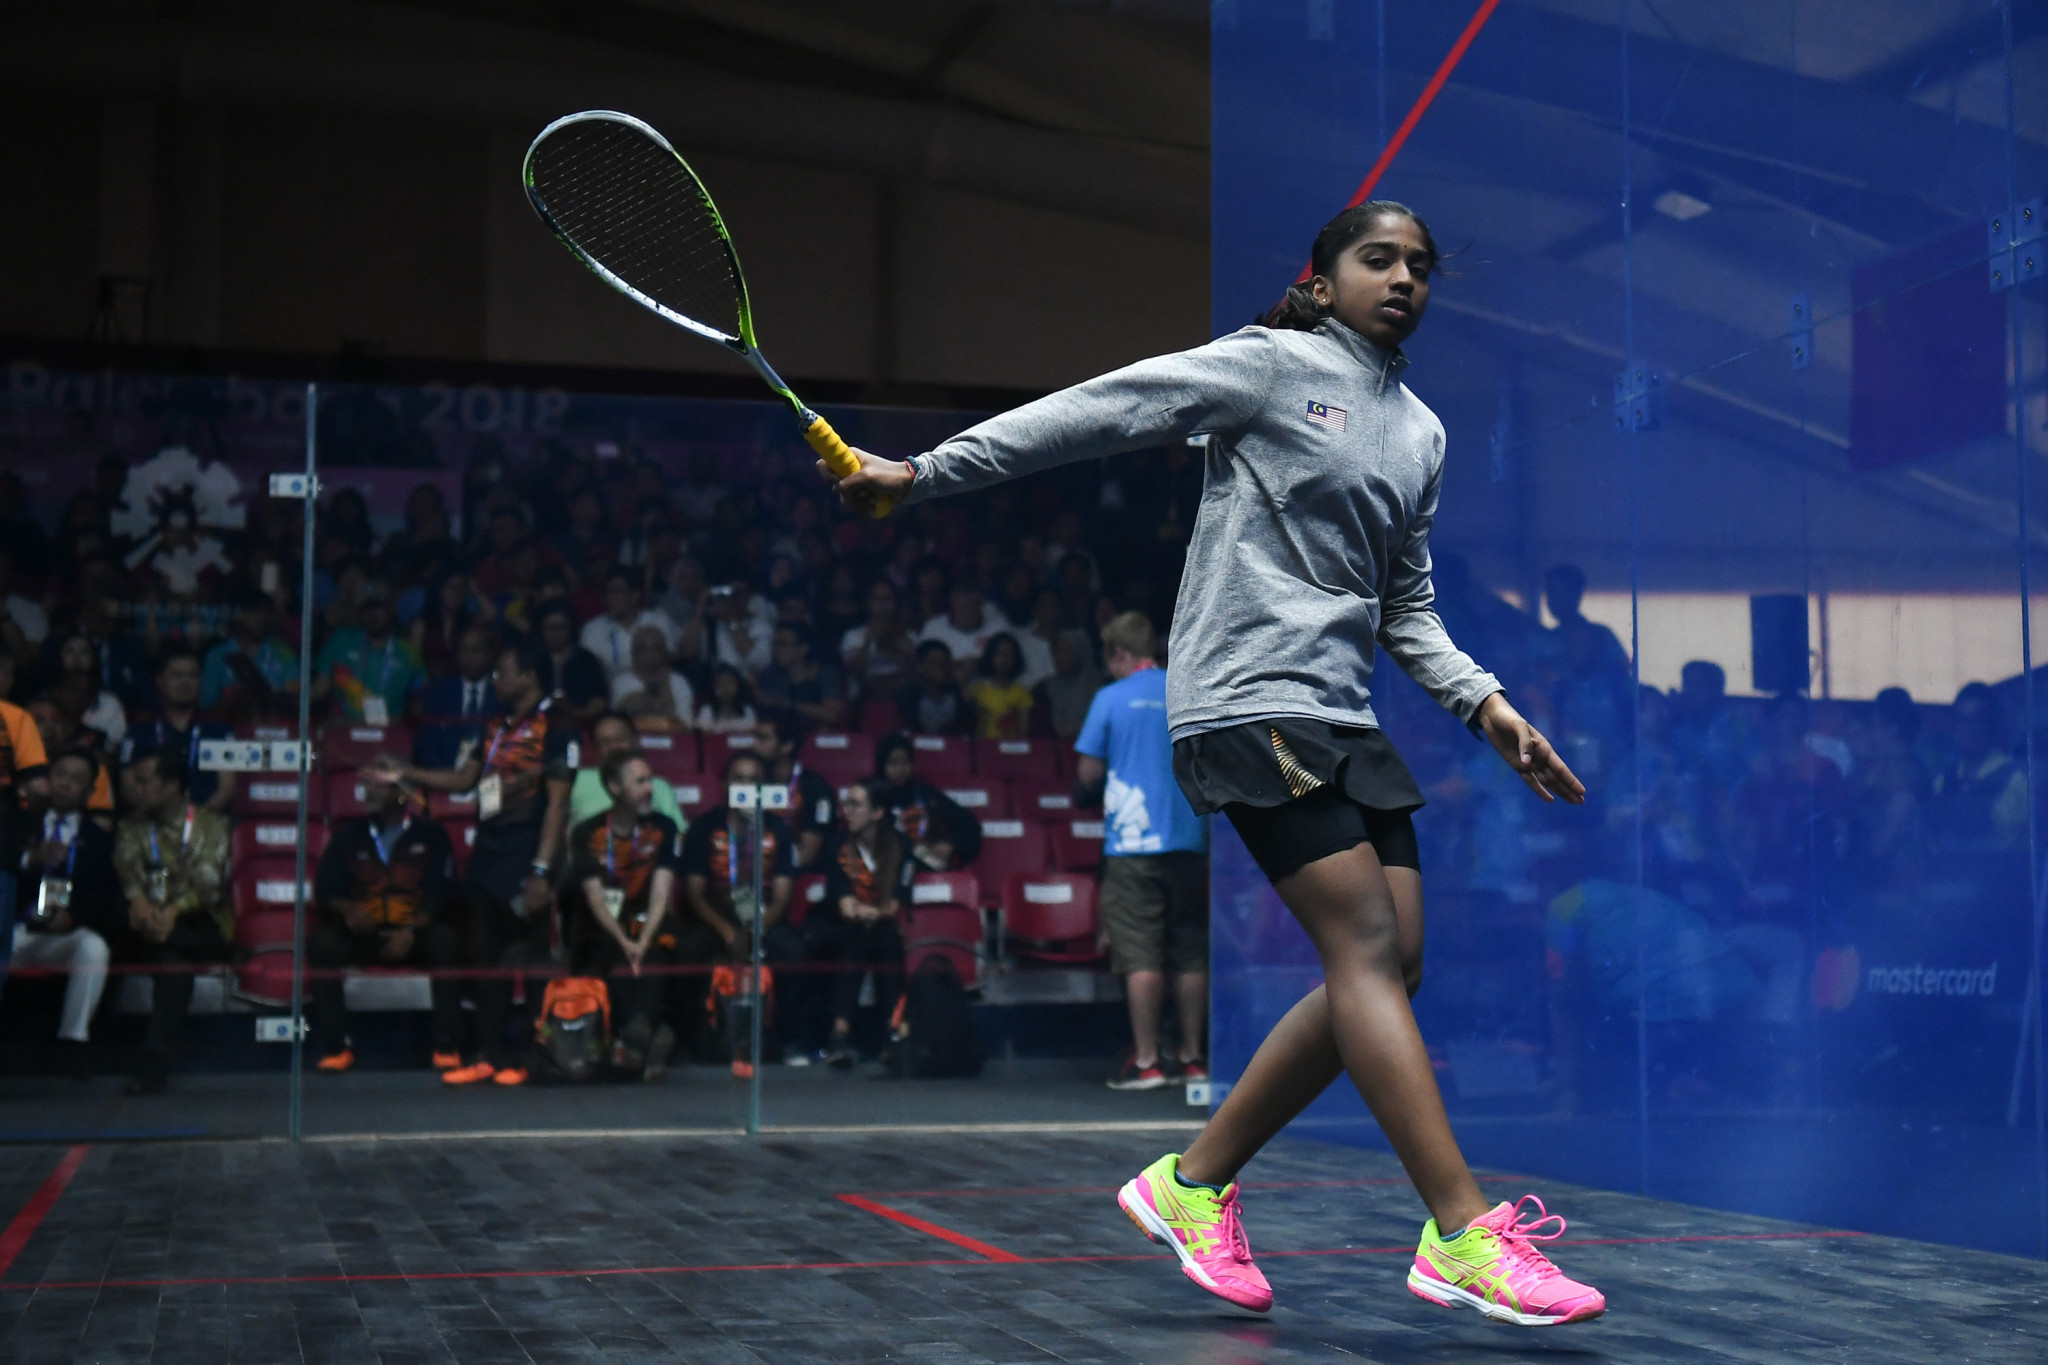 Subramaniam wins five-game epic on opening day of British Open squash